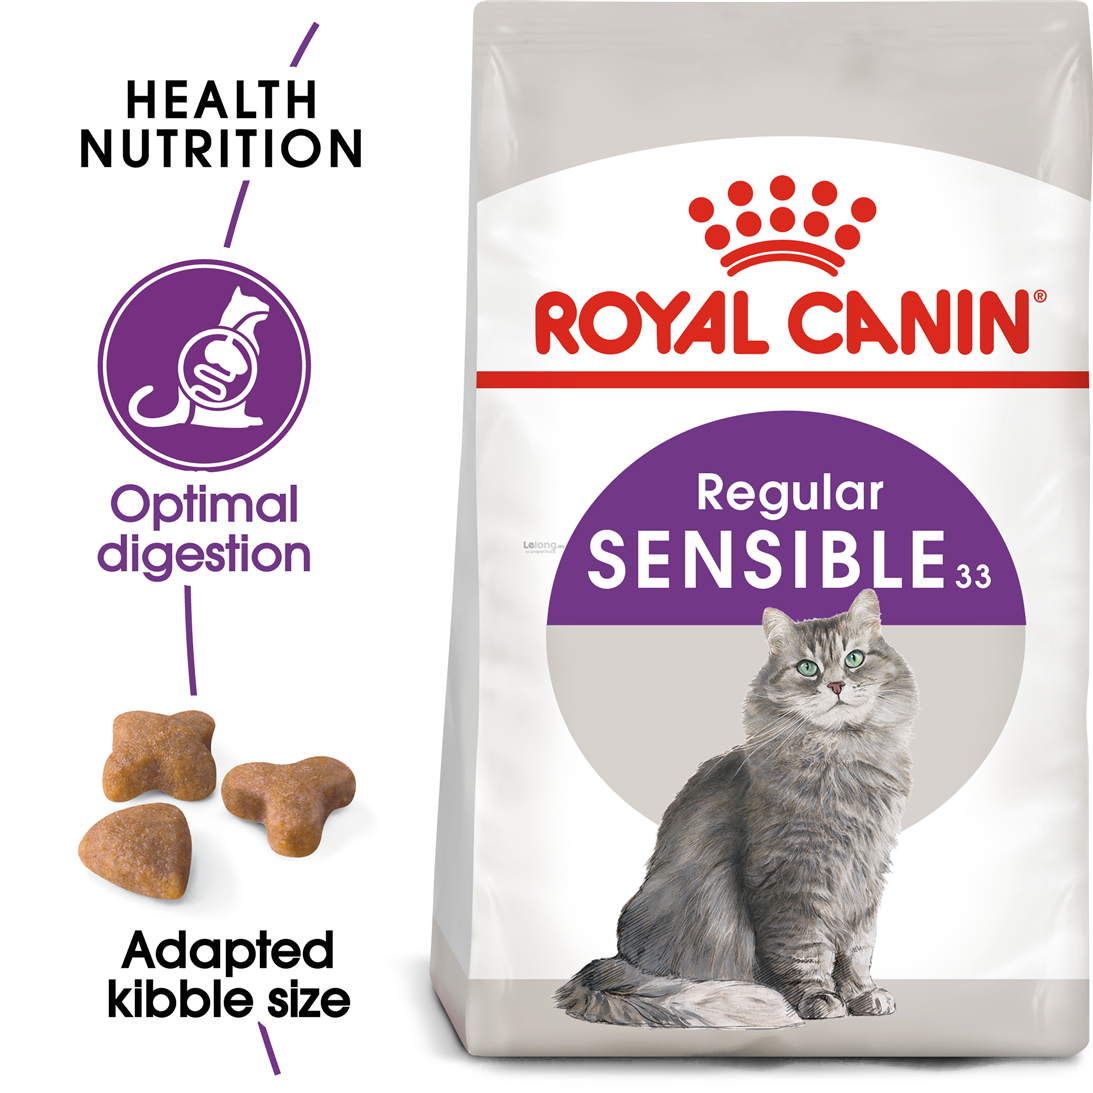 Royal Canin Sensible 33 Cat Food - 4 kg